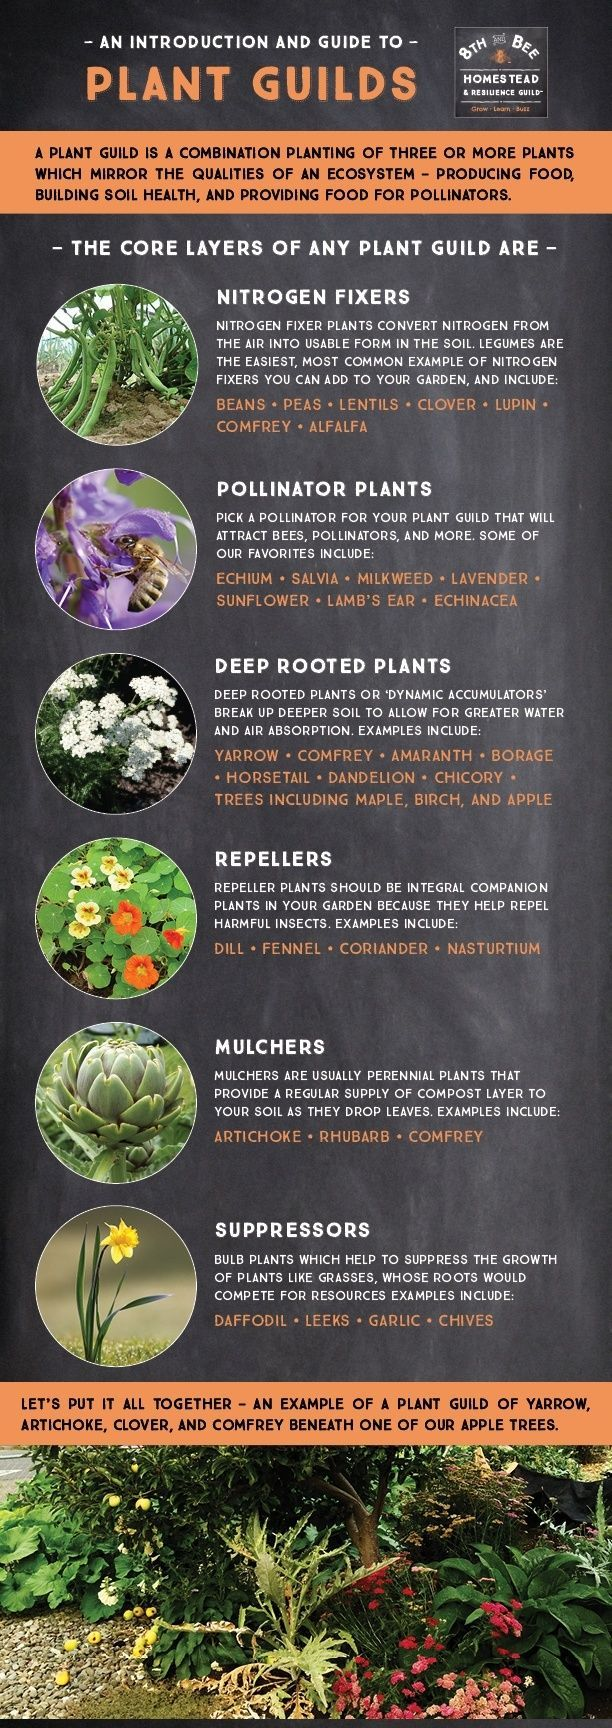 Plant Guilds (ways to combine plant[ings] that maximize growth and soil health) Infographic. BONUS: guilds do well under trees.